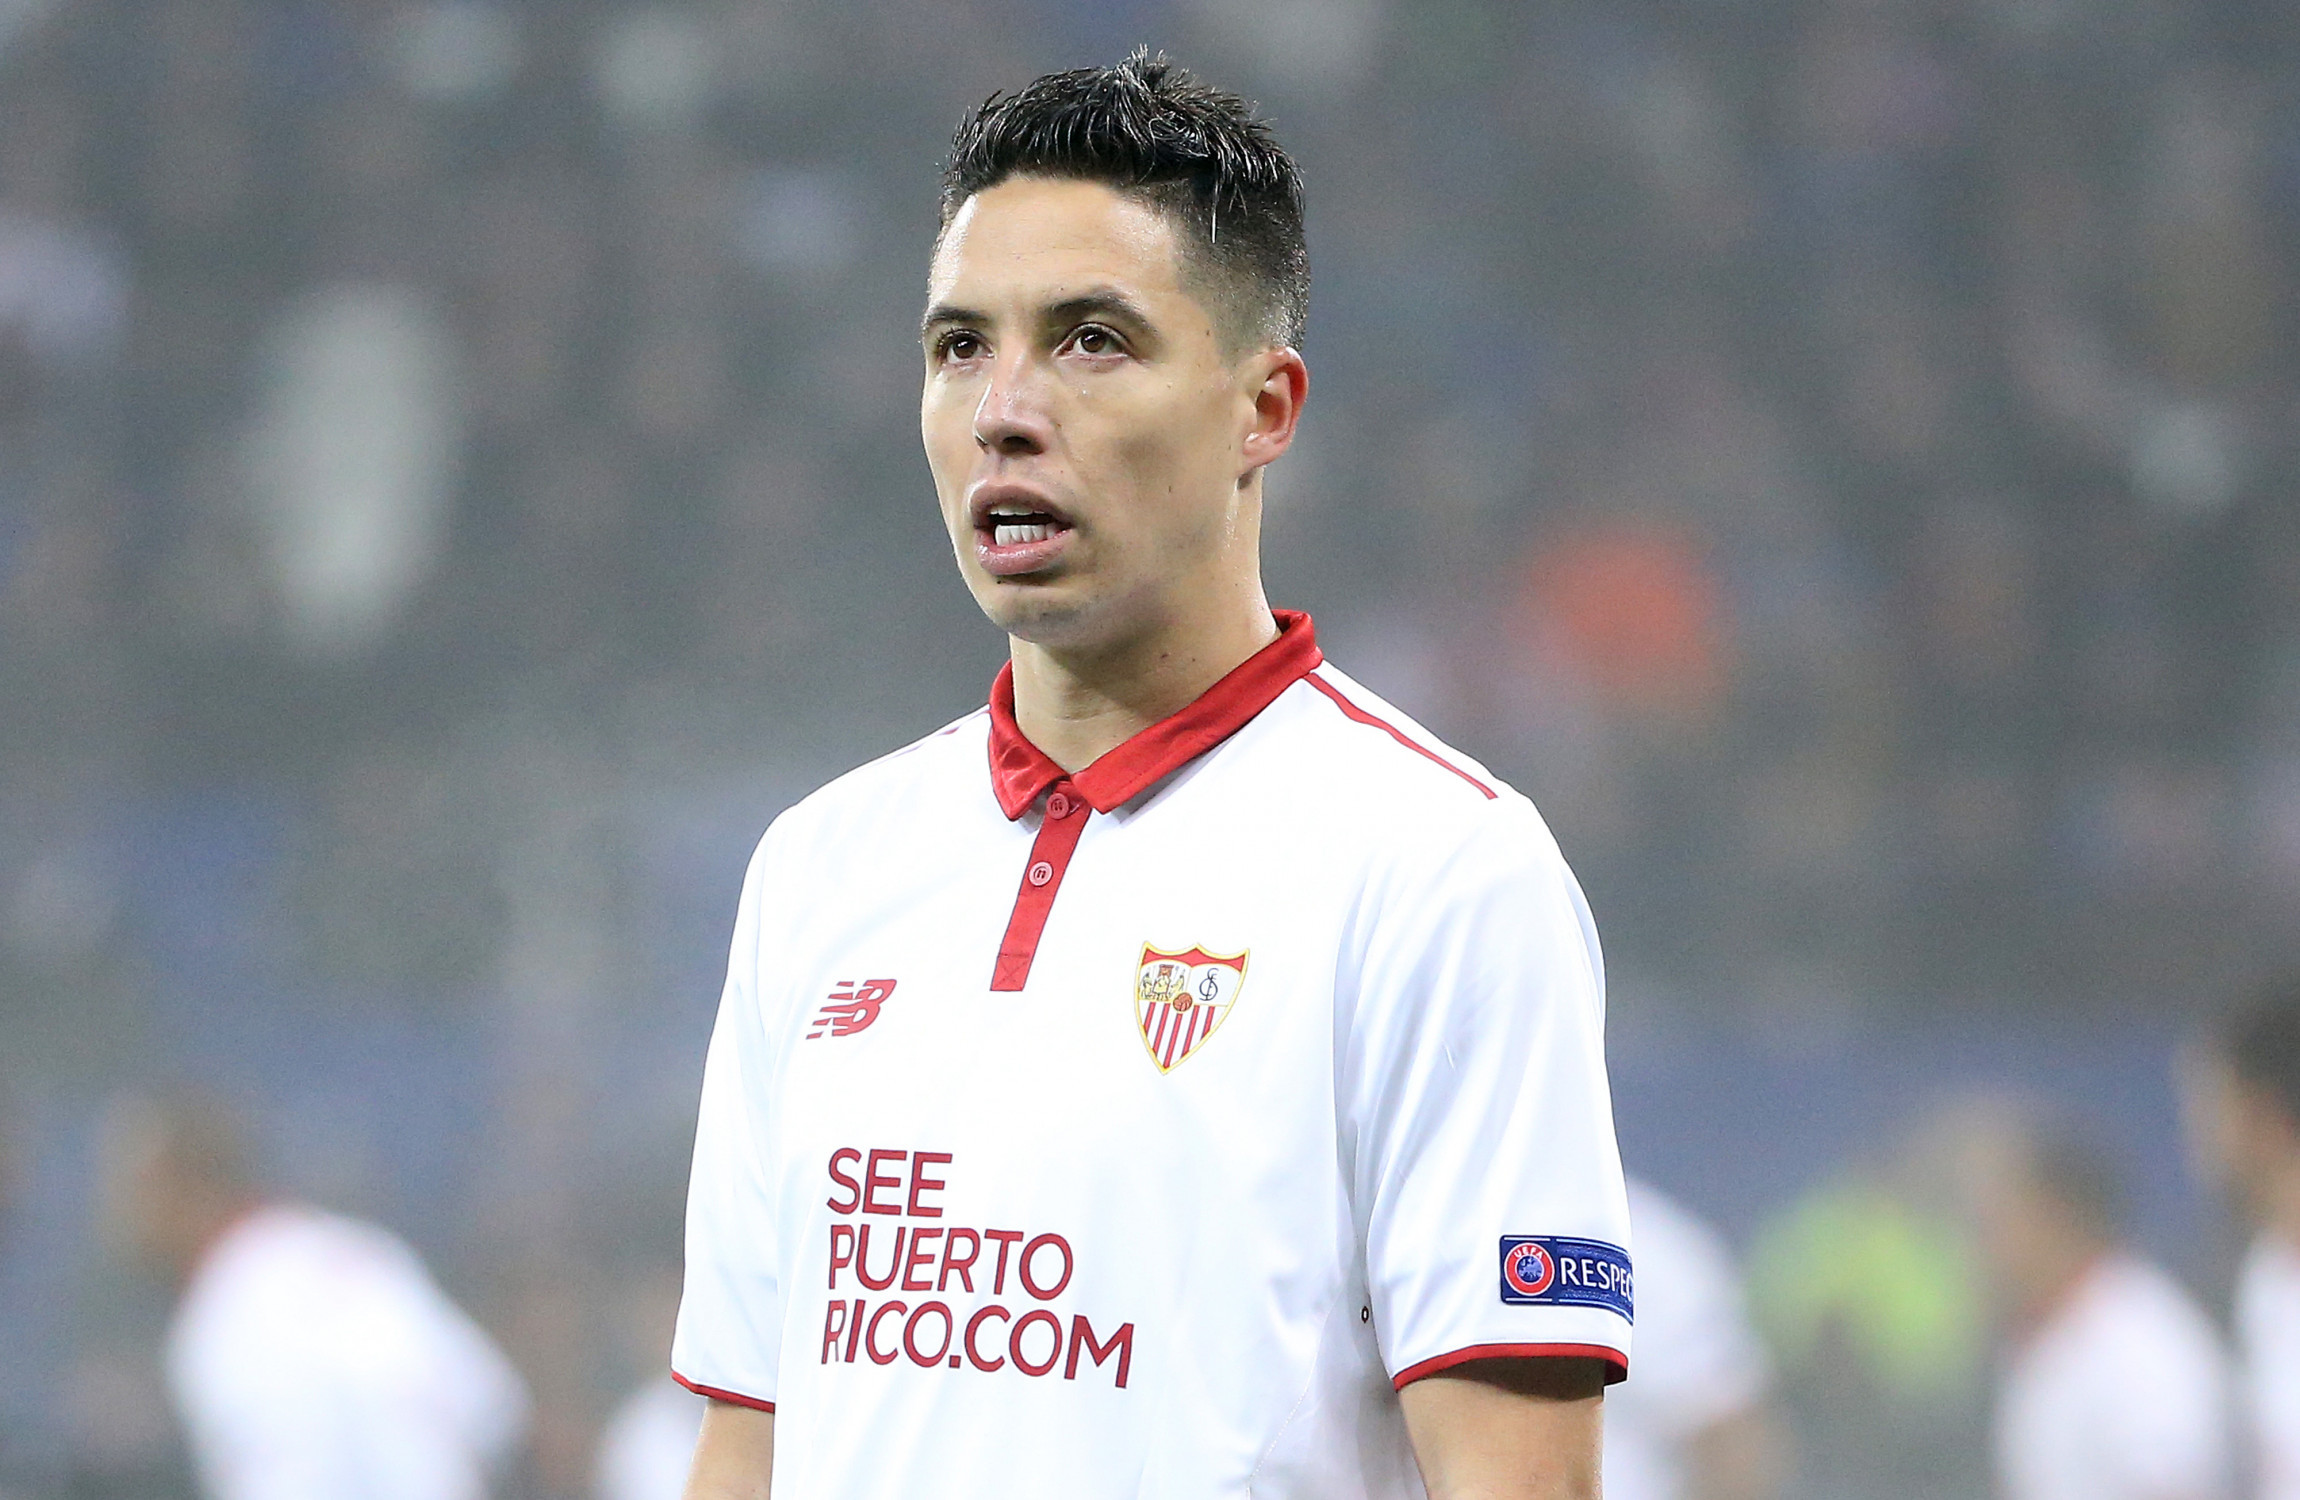 UEFA bans Ex-Man U star Nasri for 6 months over doping